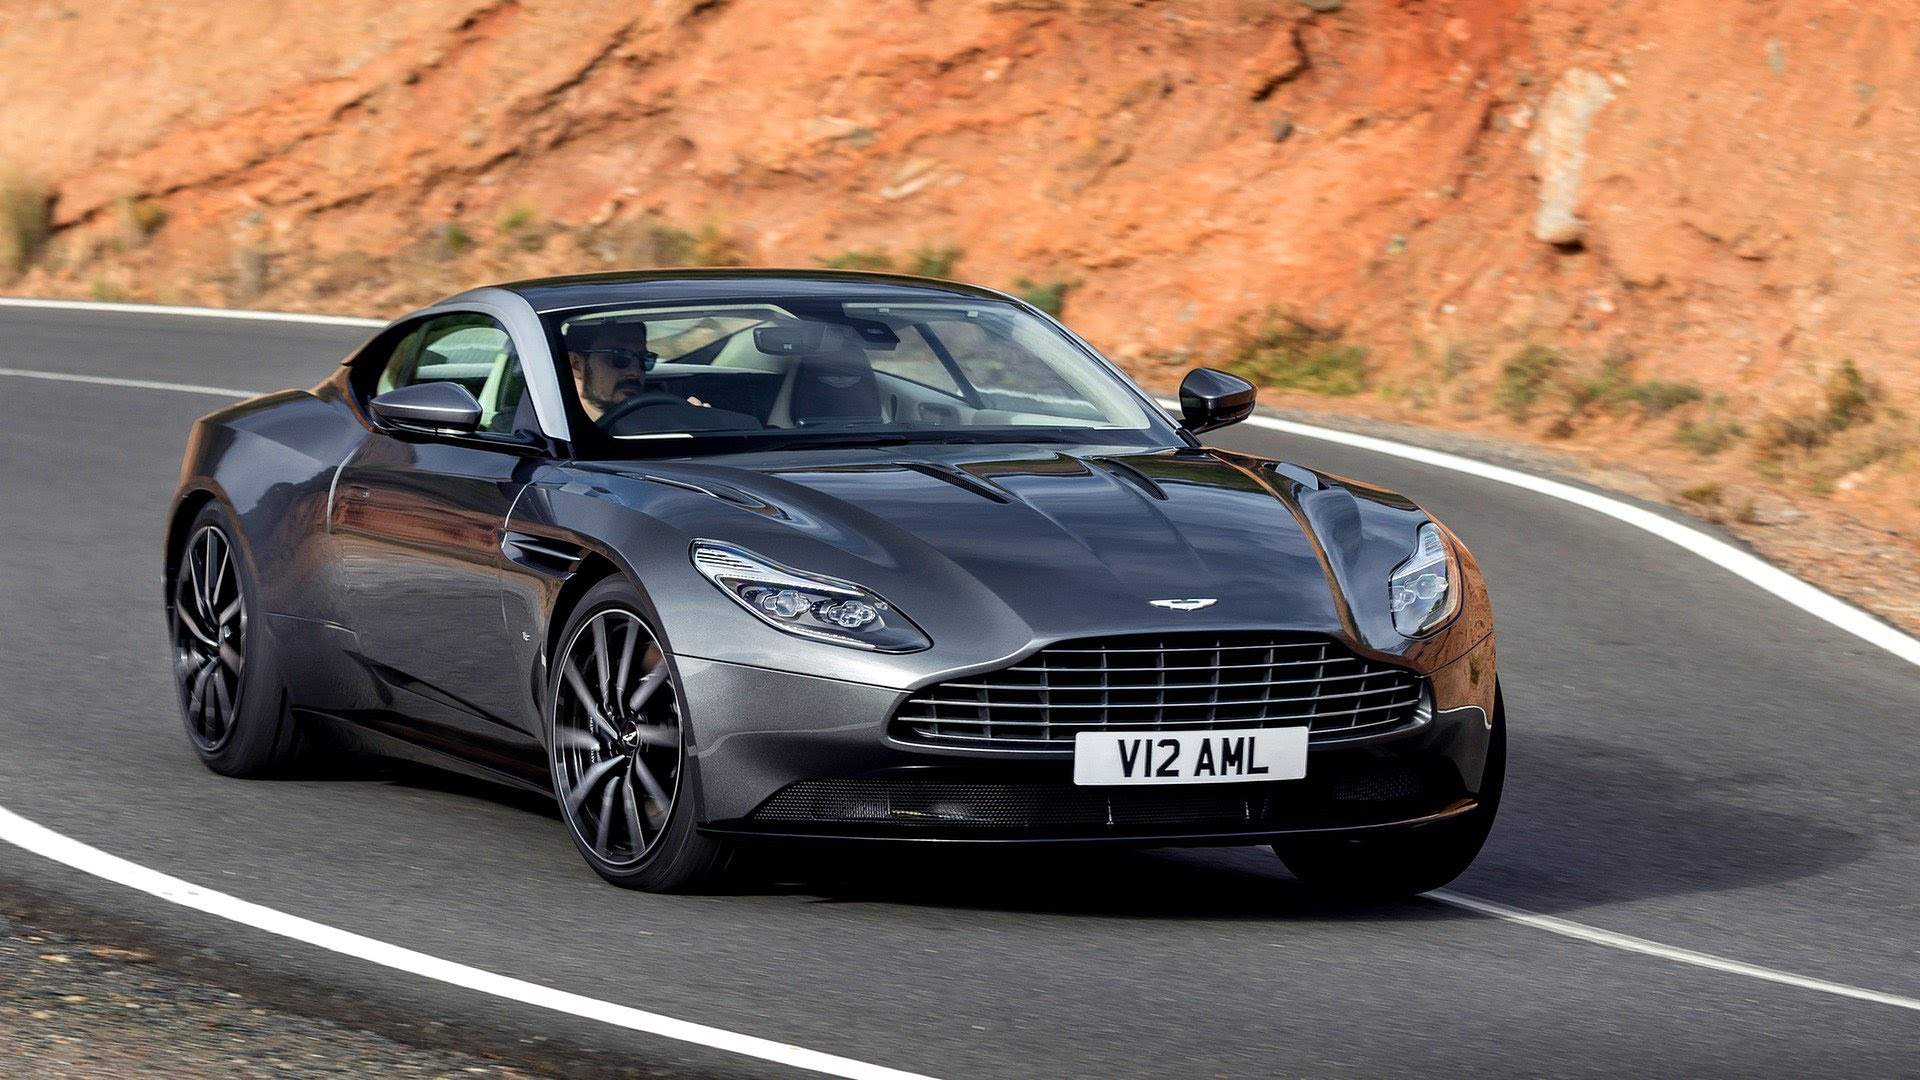 What Are The Typical Maintenance Costs For An Exotic Woodside Credit - Aston martin vantage maintenance